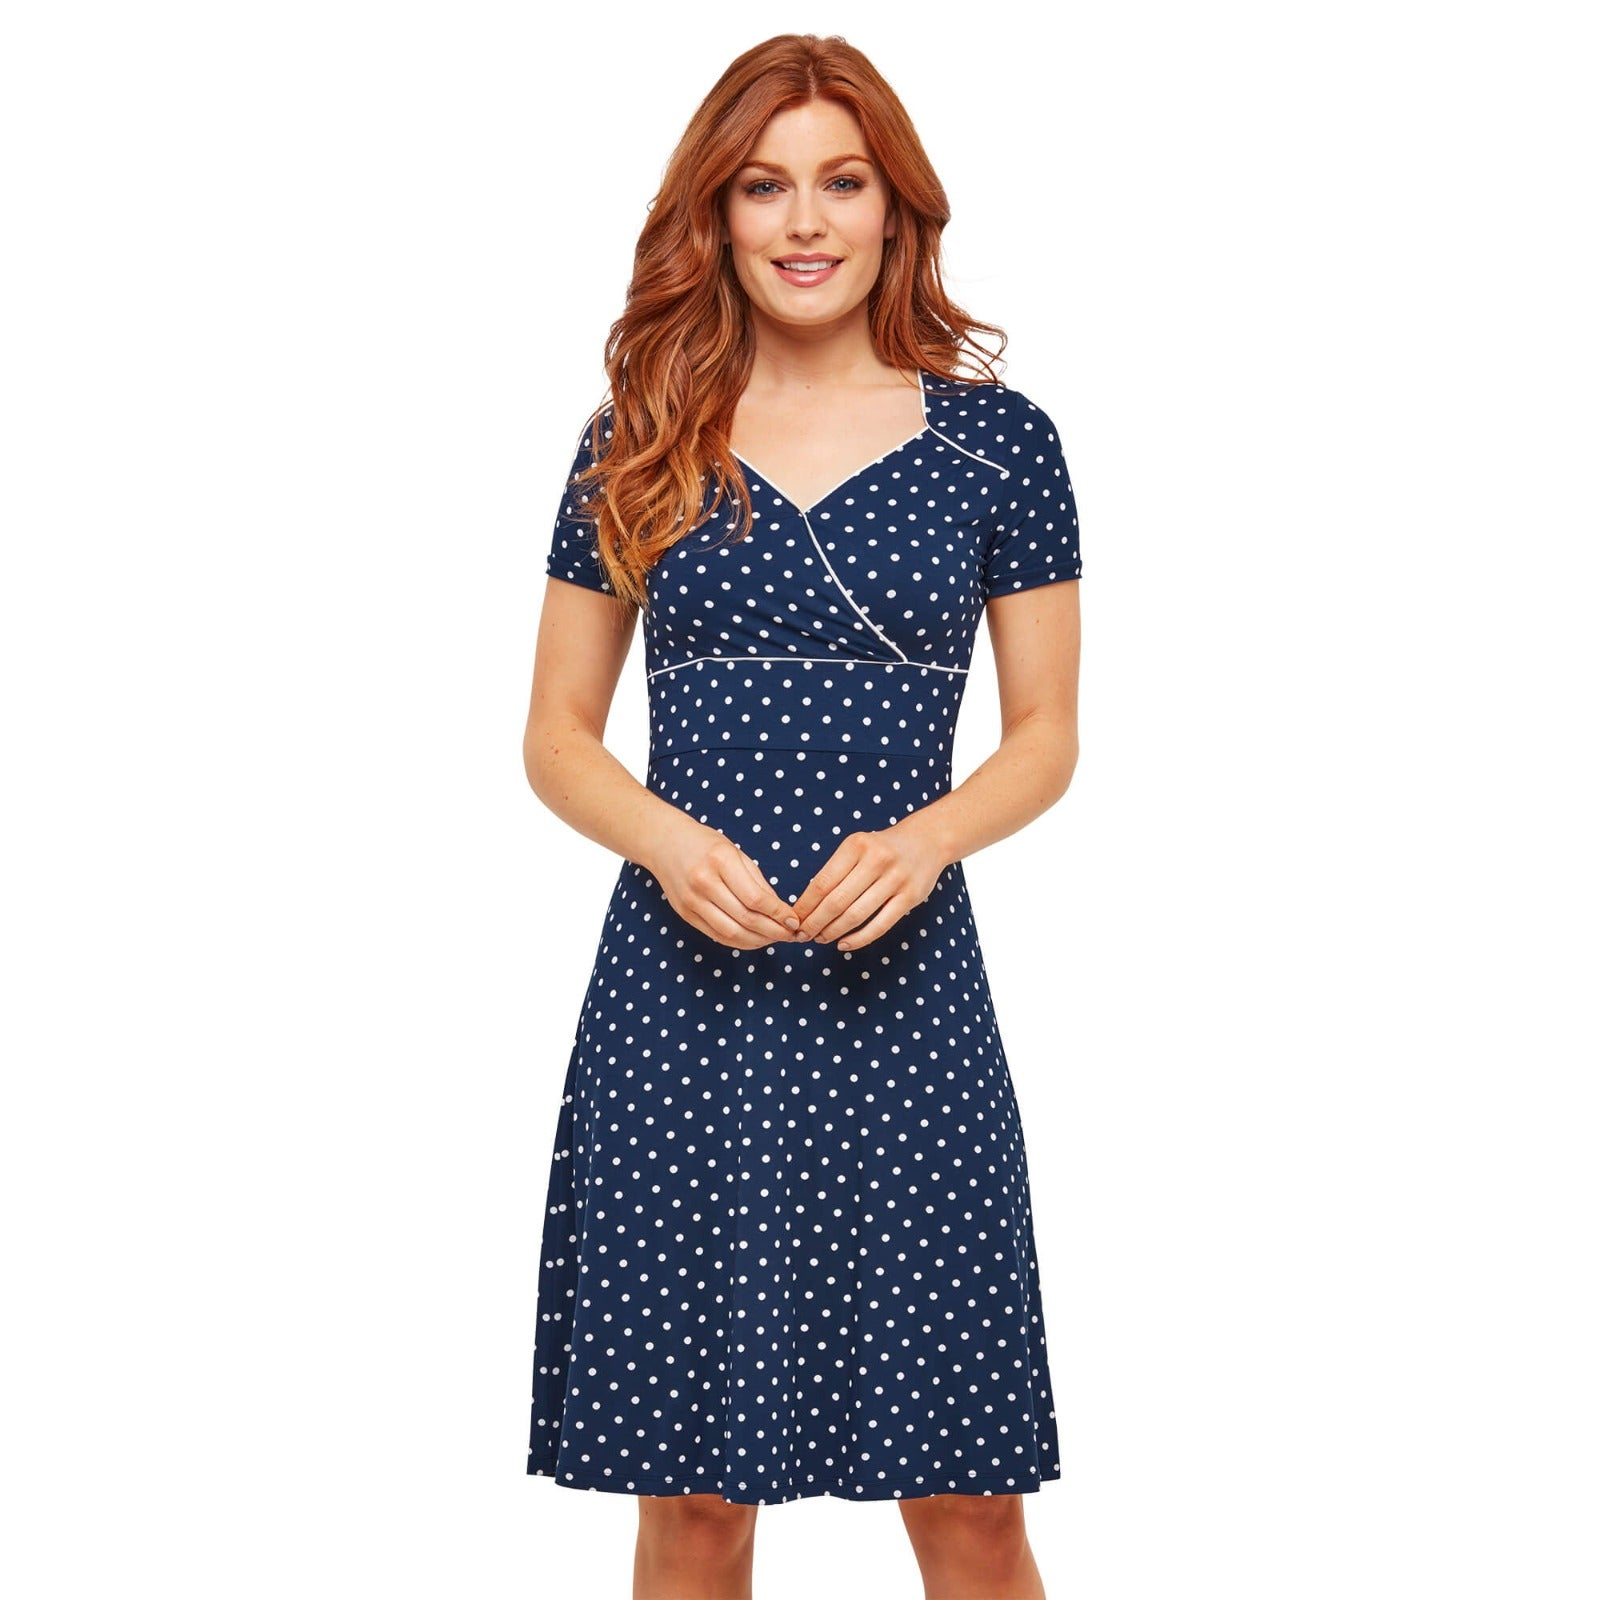 Perfect Polka Dot Jersey Dress